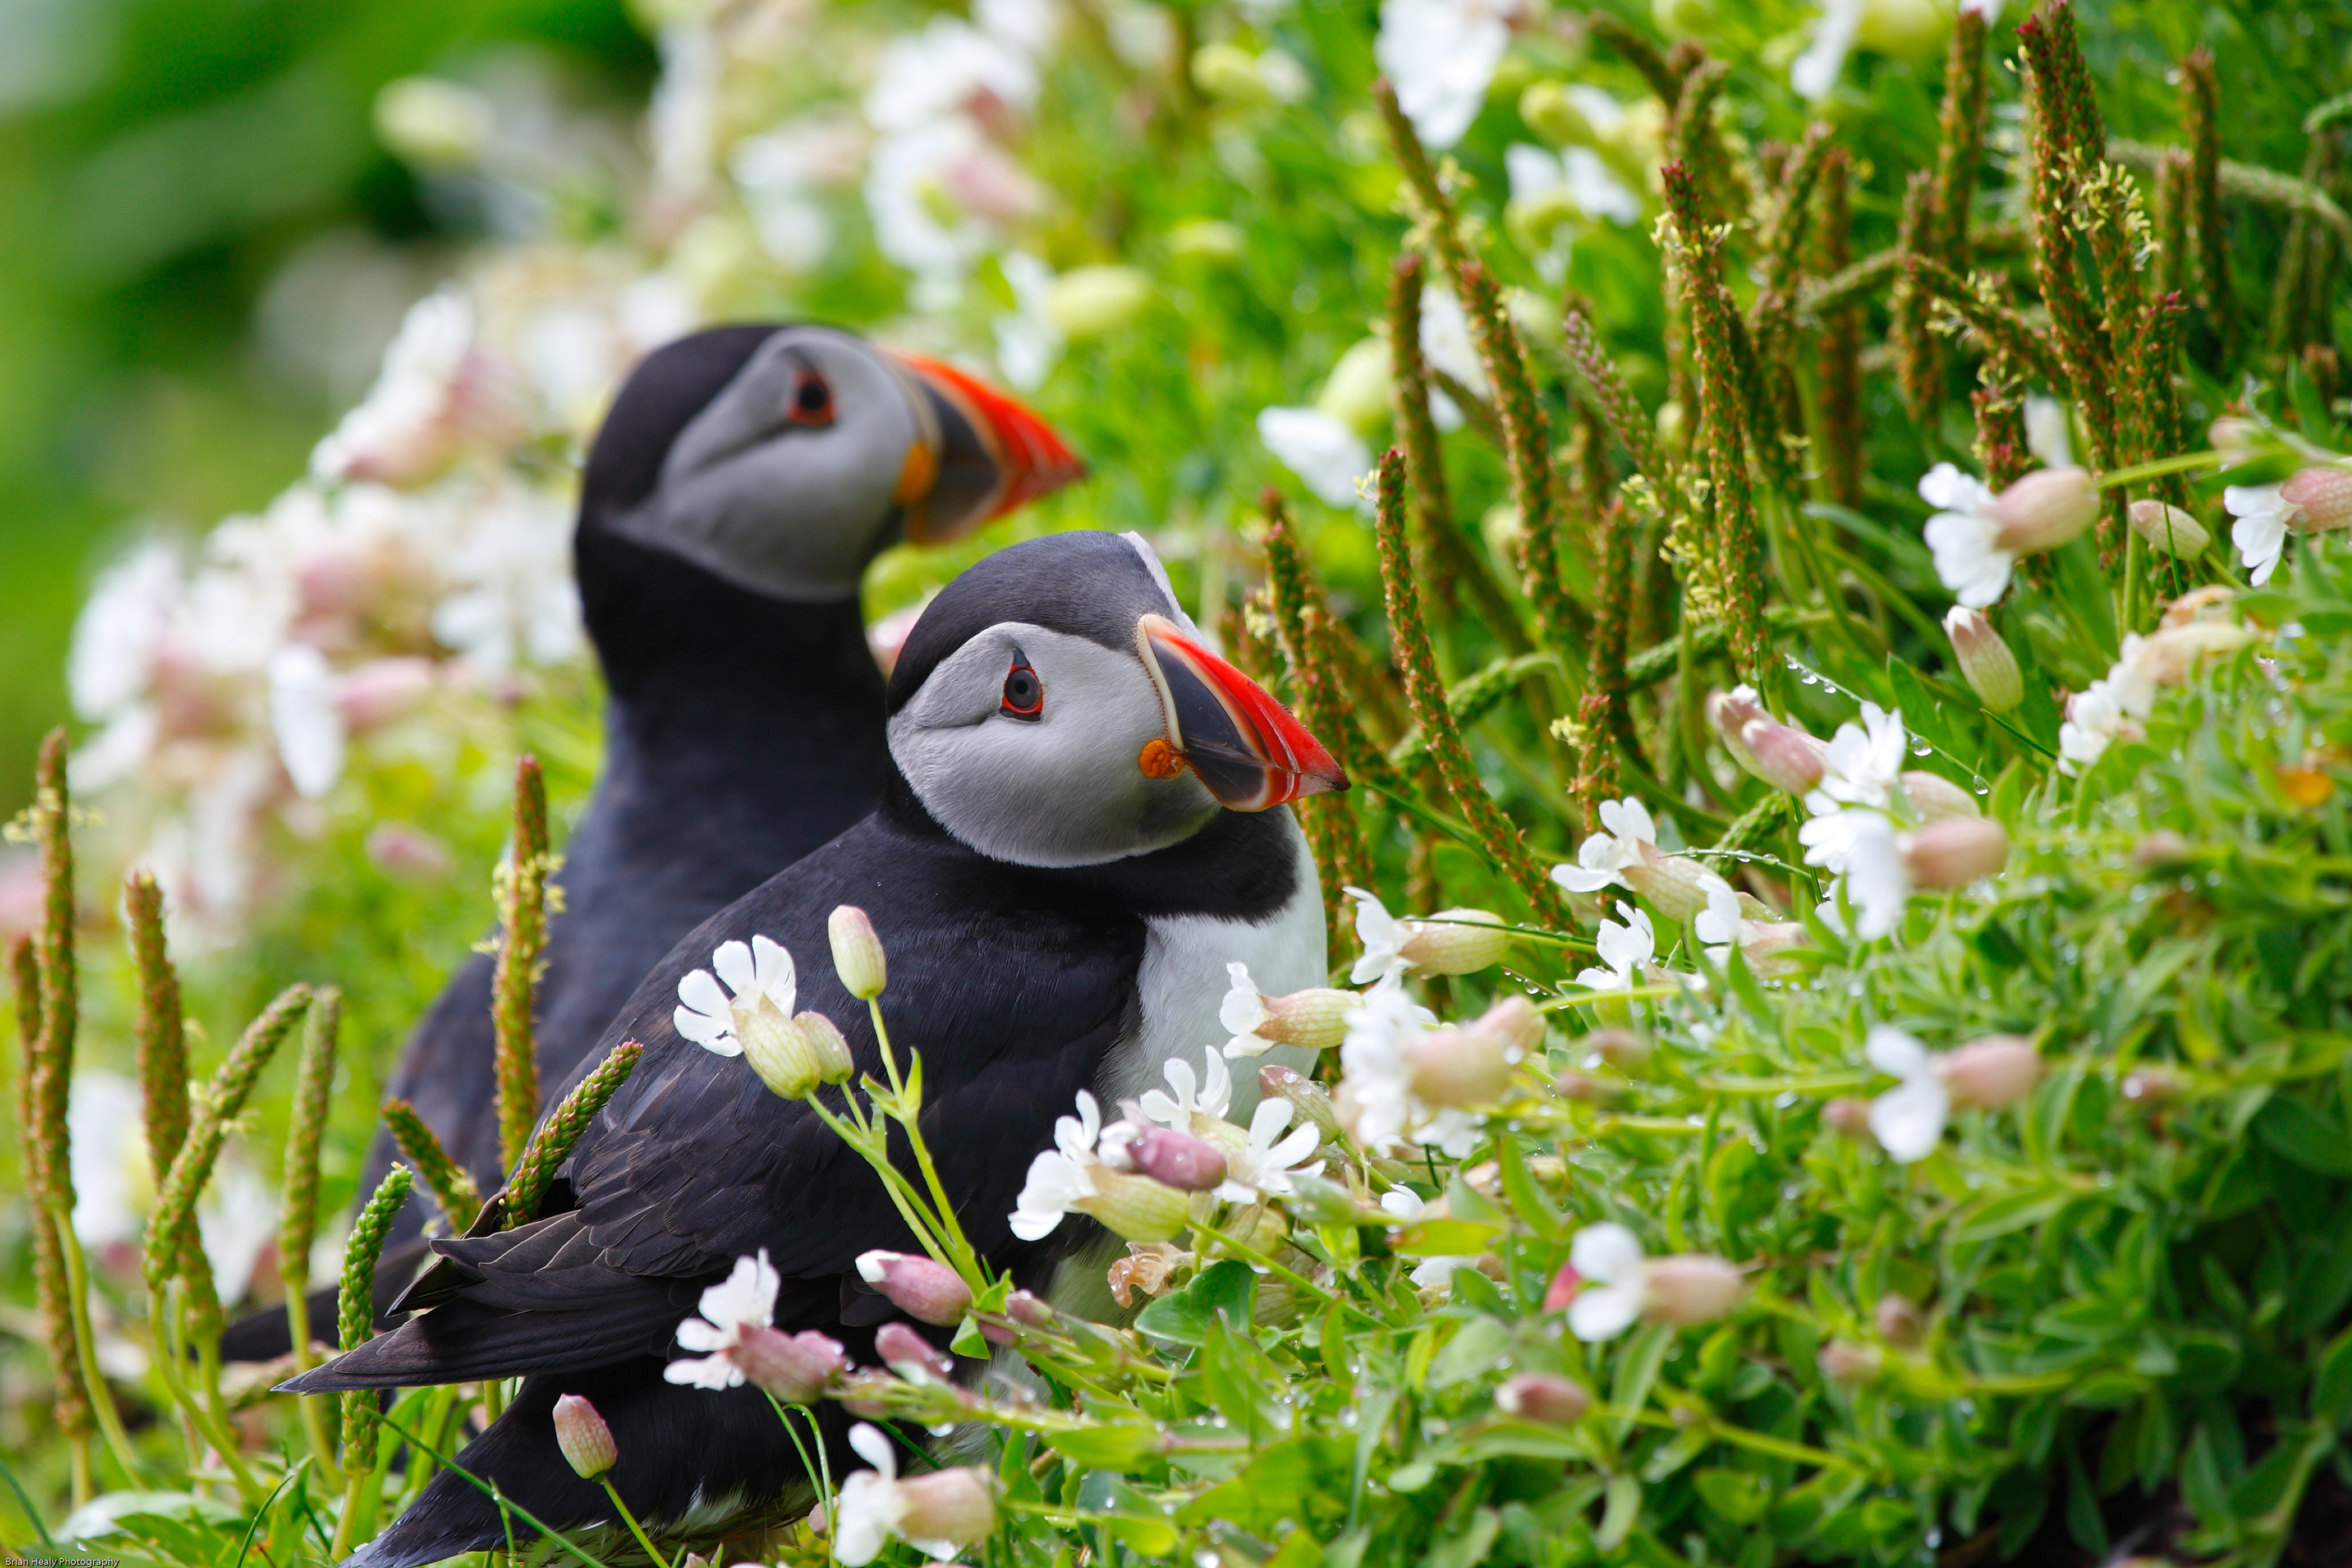 90591 download wallpaper Animals, Flowers, Grass, Cones, Couple, Pair, Sight, Opinion, Spikelets, Dew, Dead Ends, Deadlocks, Puffin screensavers and pictures for free